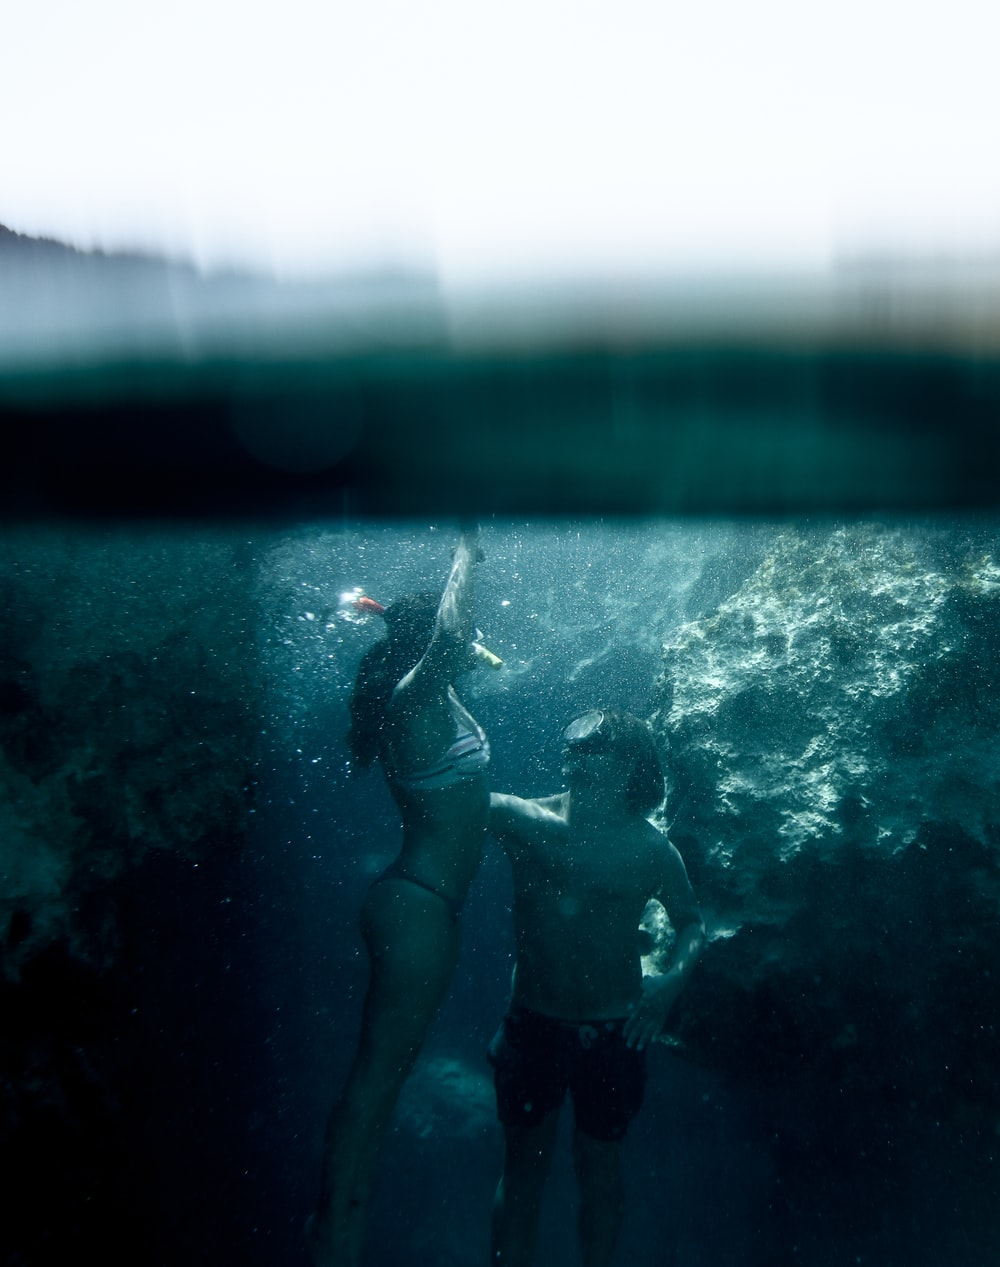 woman and man snorkeling under water